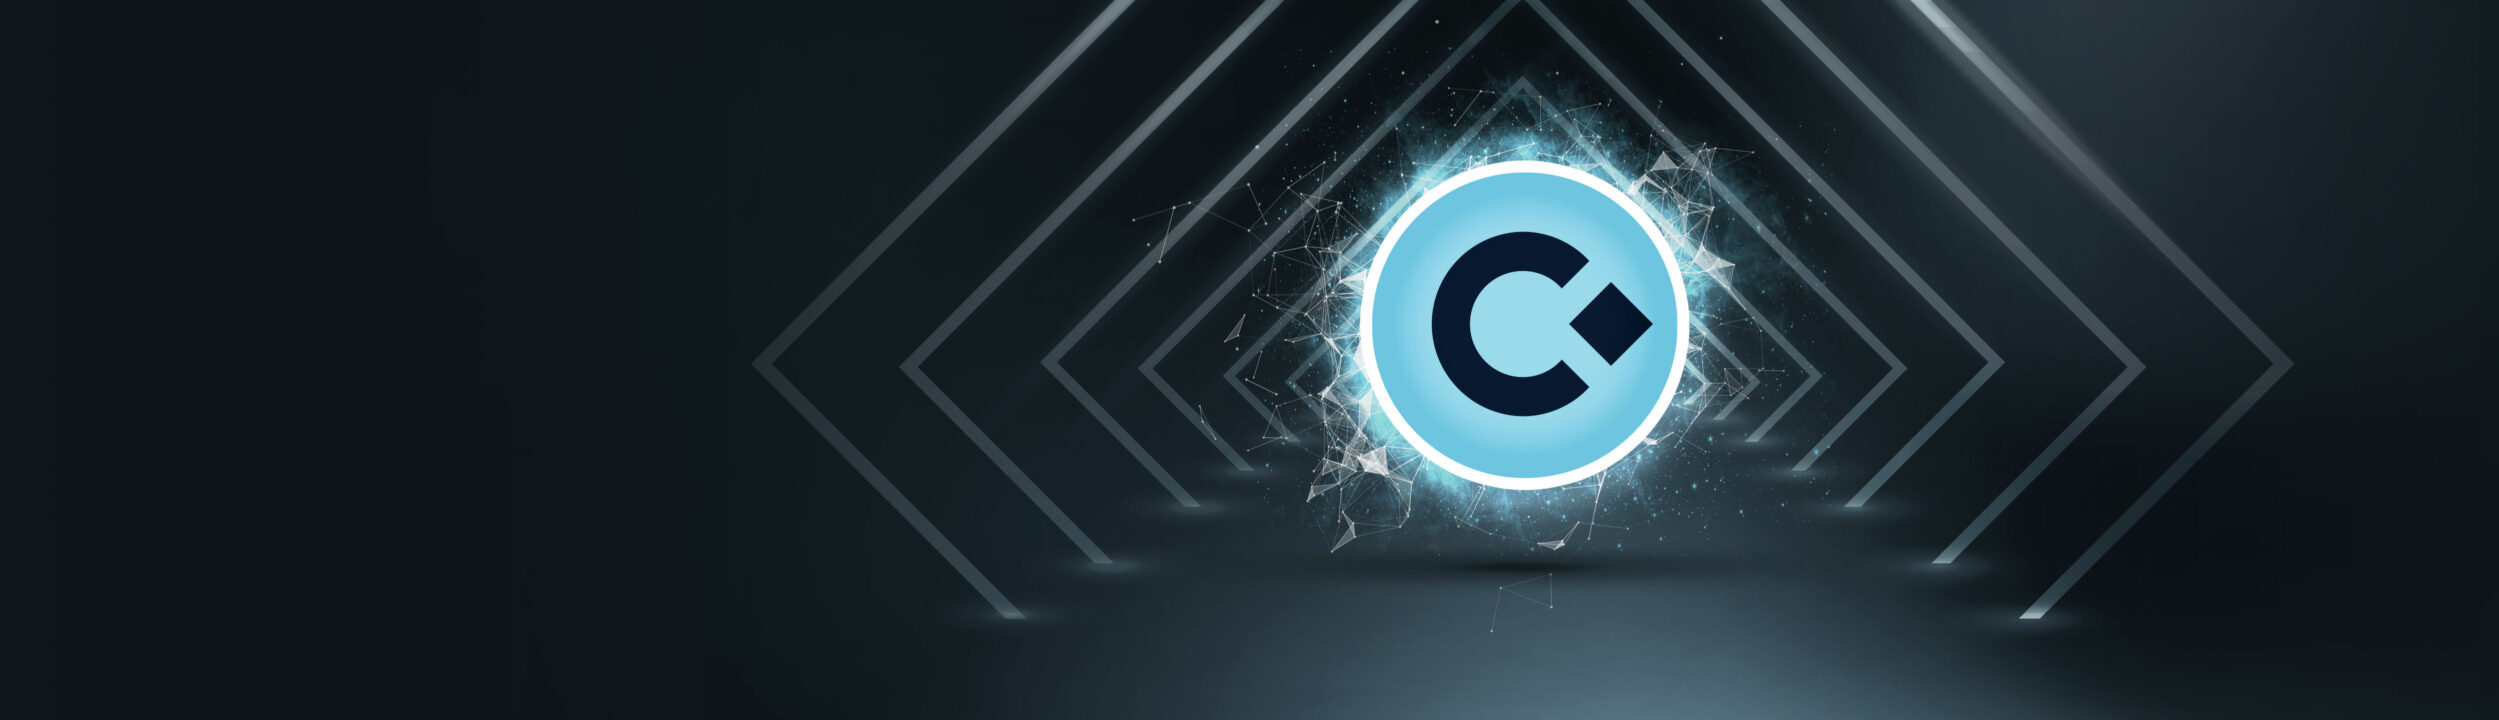 Earn and get benefits from CoinDeal Token!